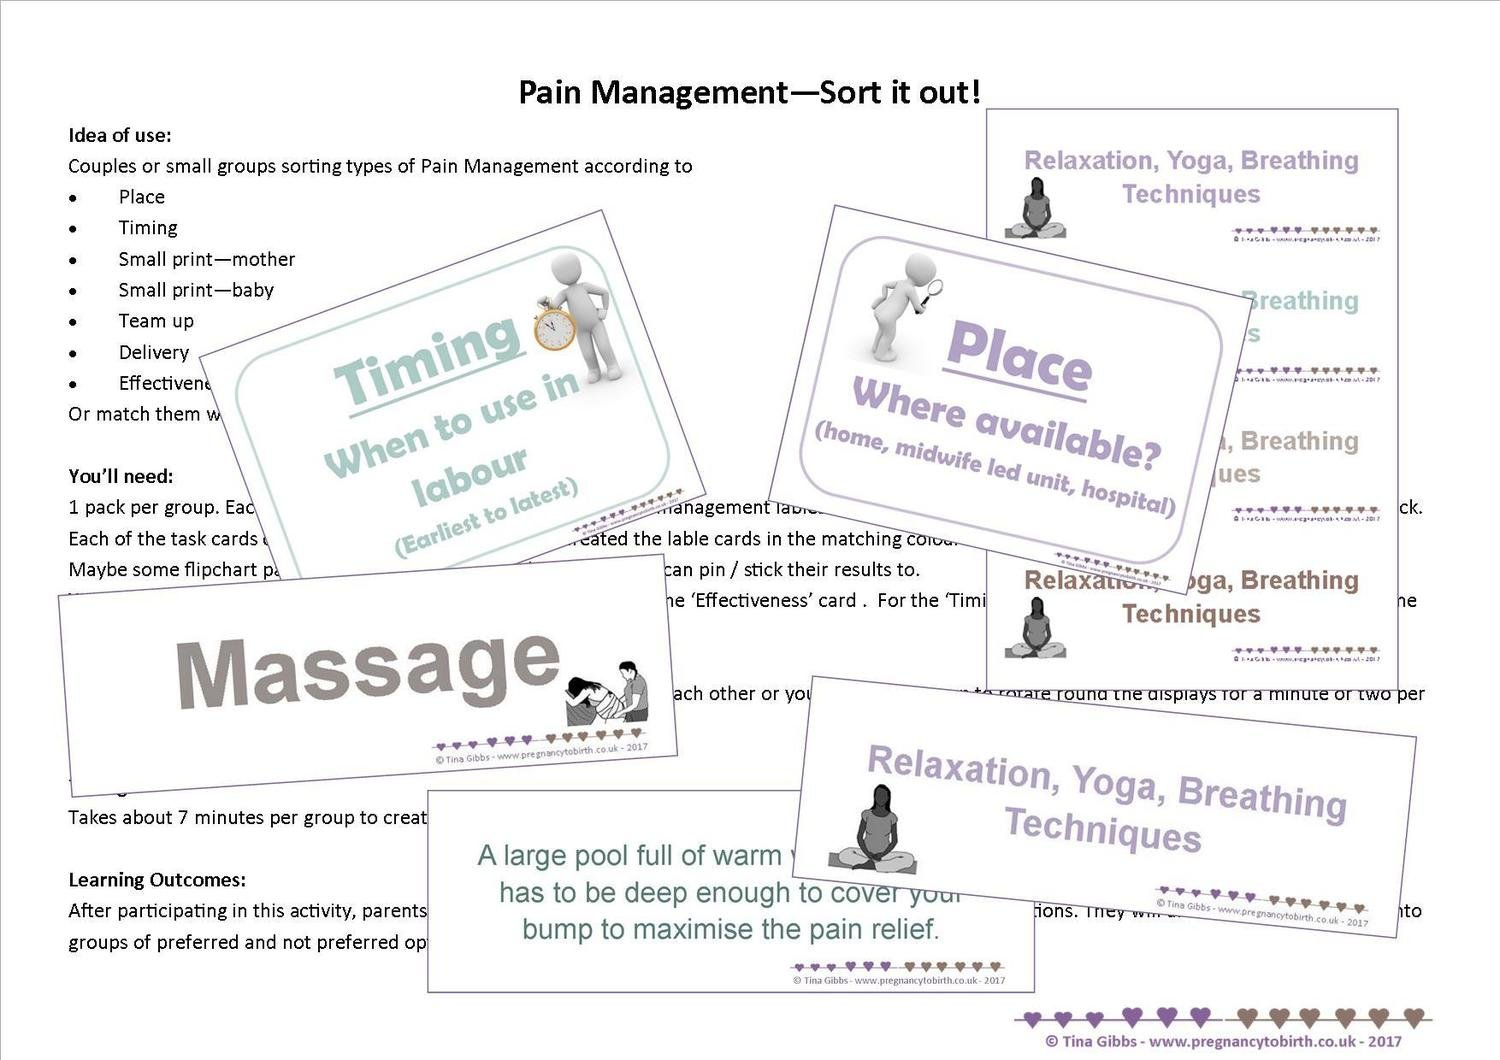 Pain Management - Sort it out! An activity for up to 8 small groups